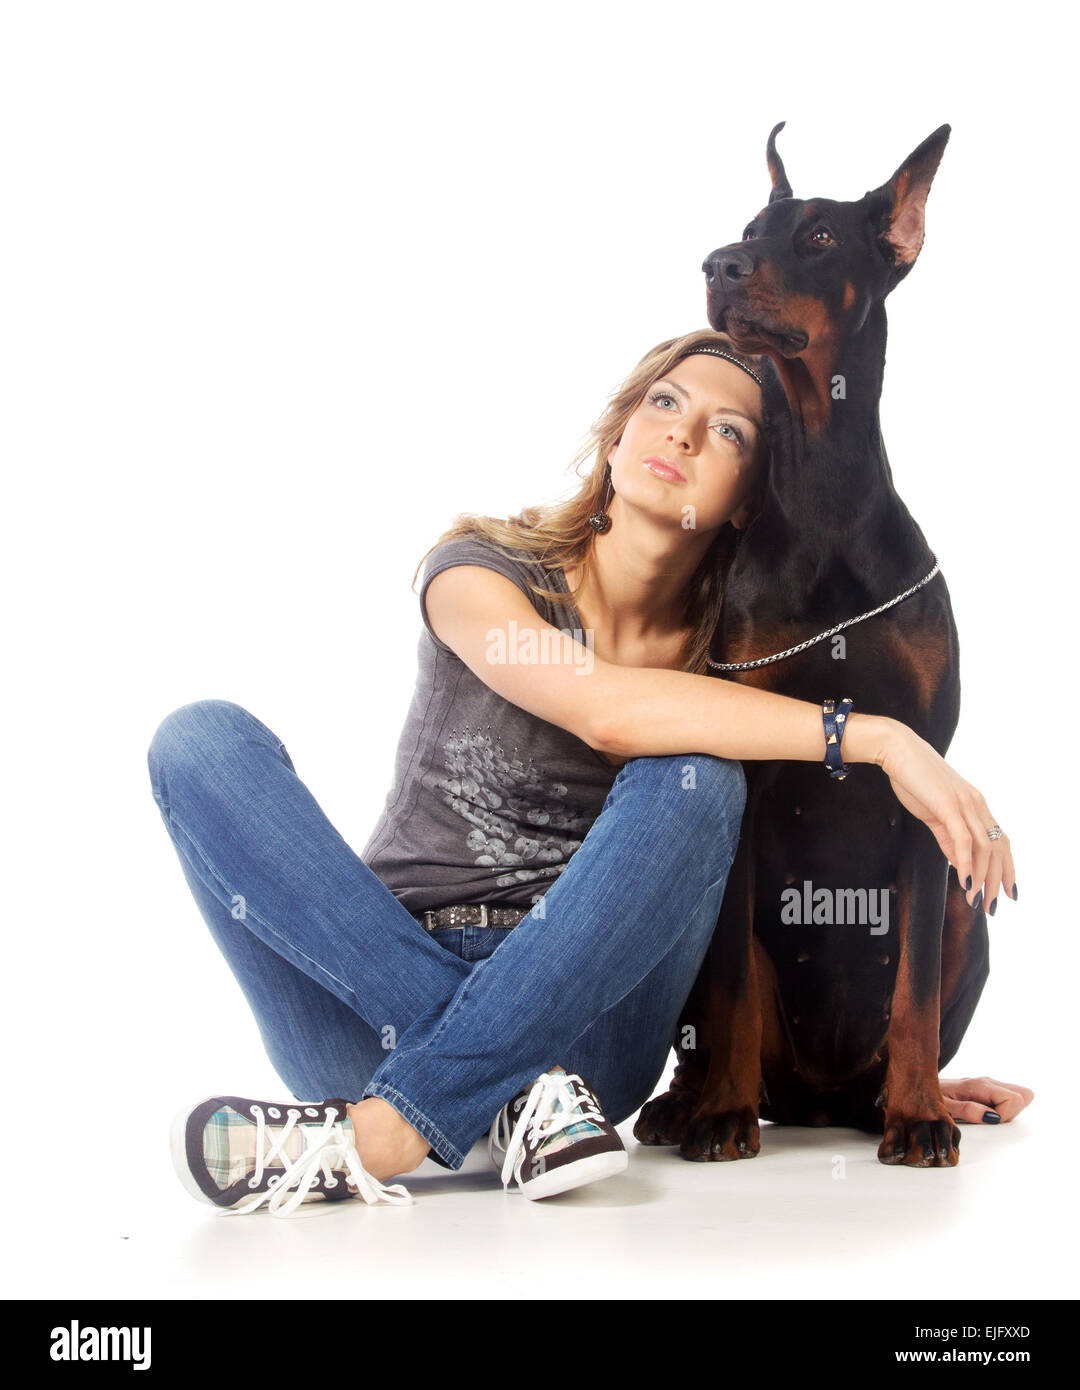 Young woman with black dobermann dog, on white - Stock Image